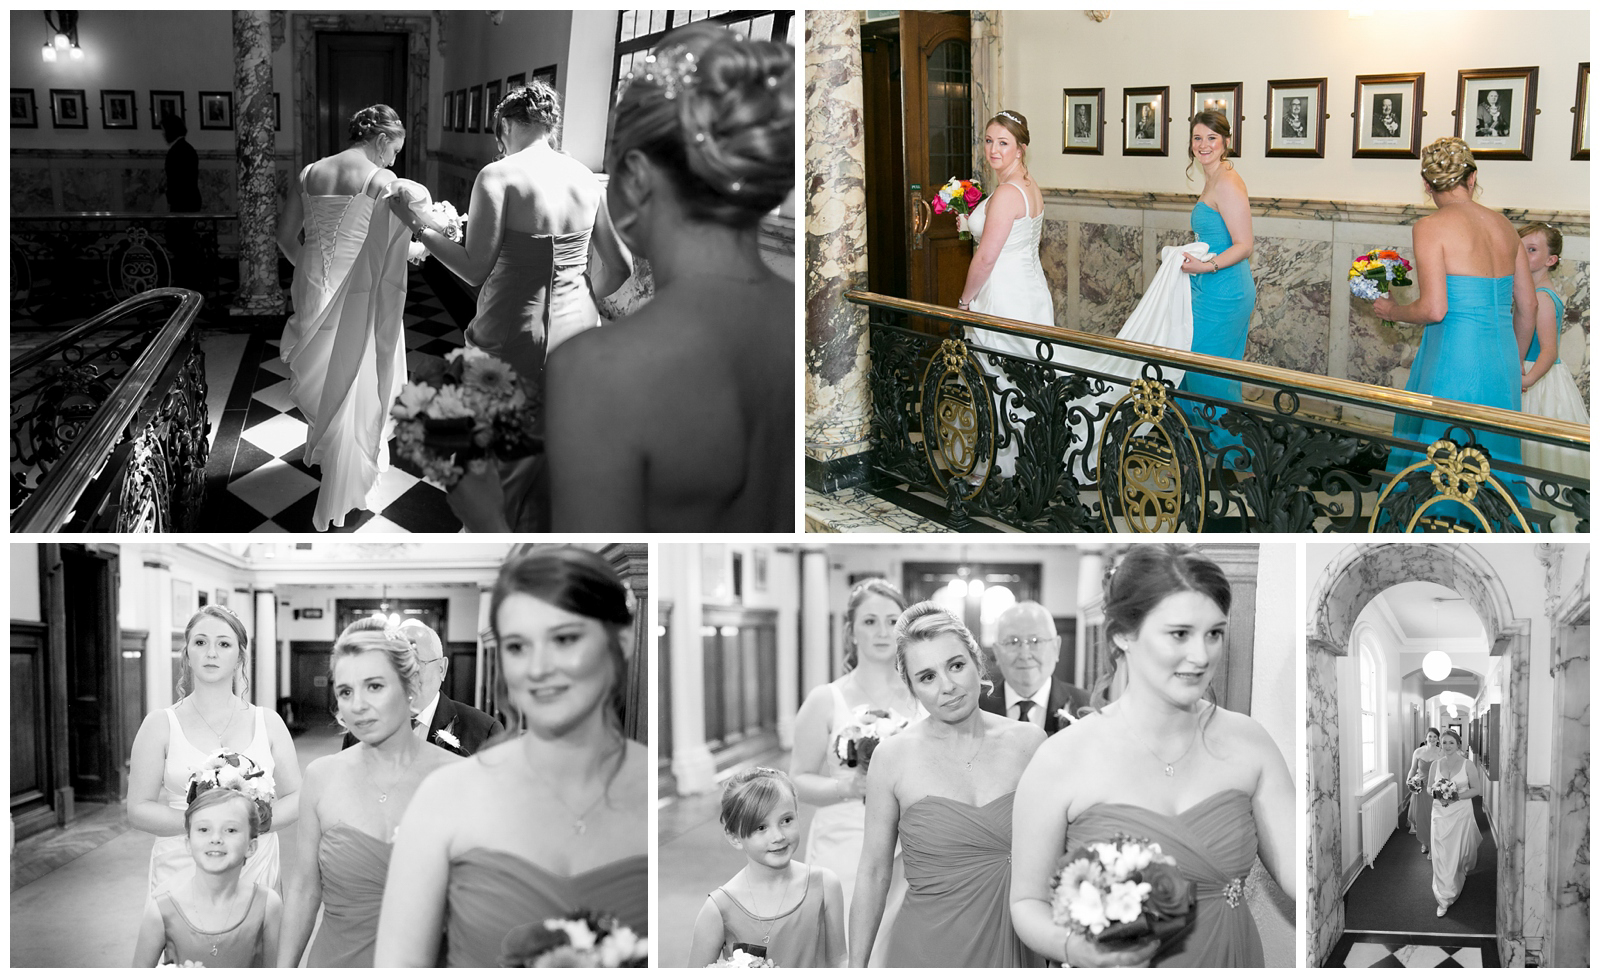 Wedding photography in Stockport, Chehsire